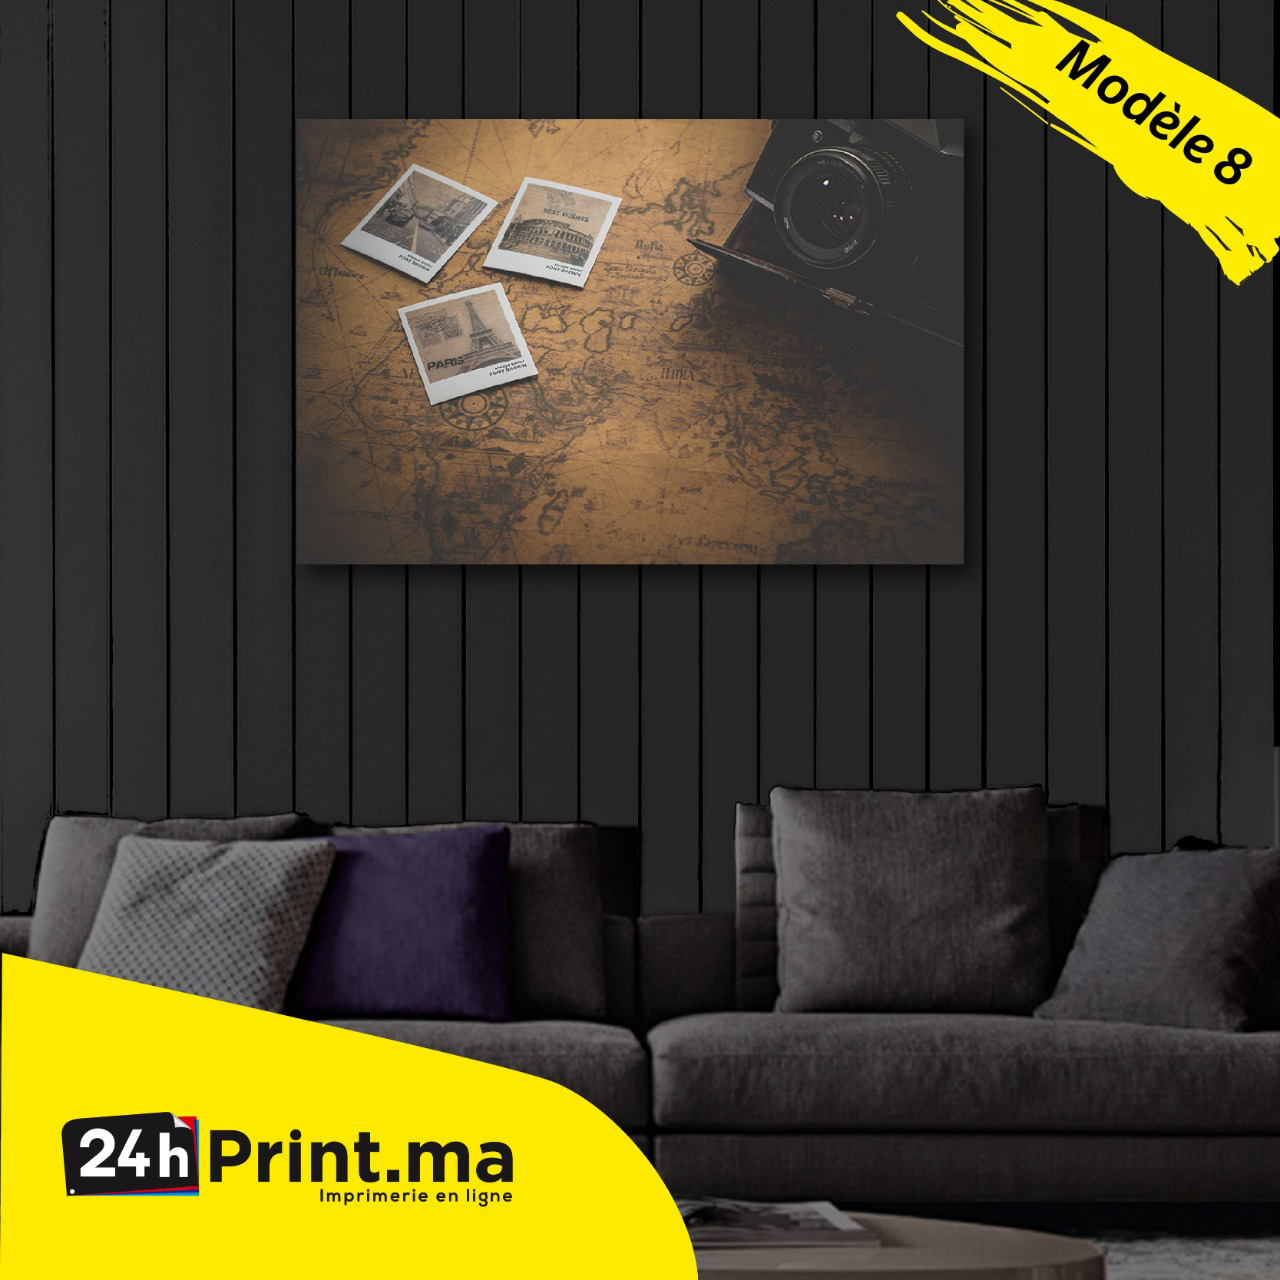 https://www.24hprint.ma/images/products_gallery_images/832.jpg